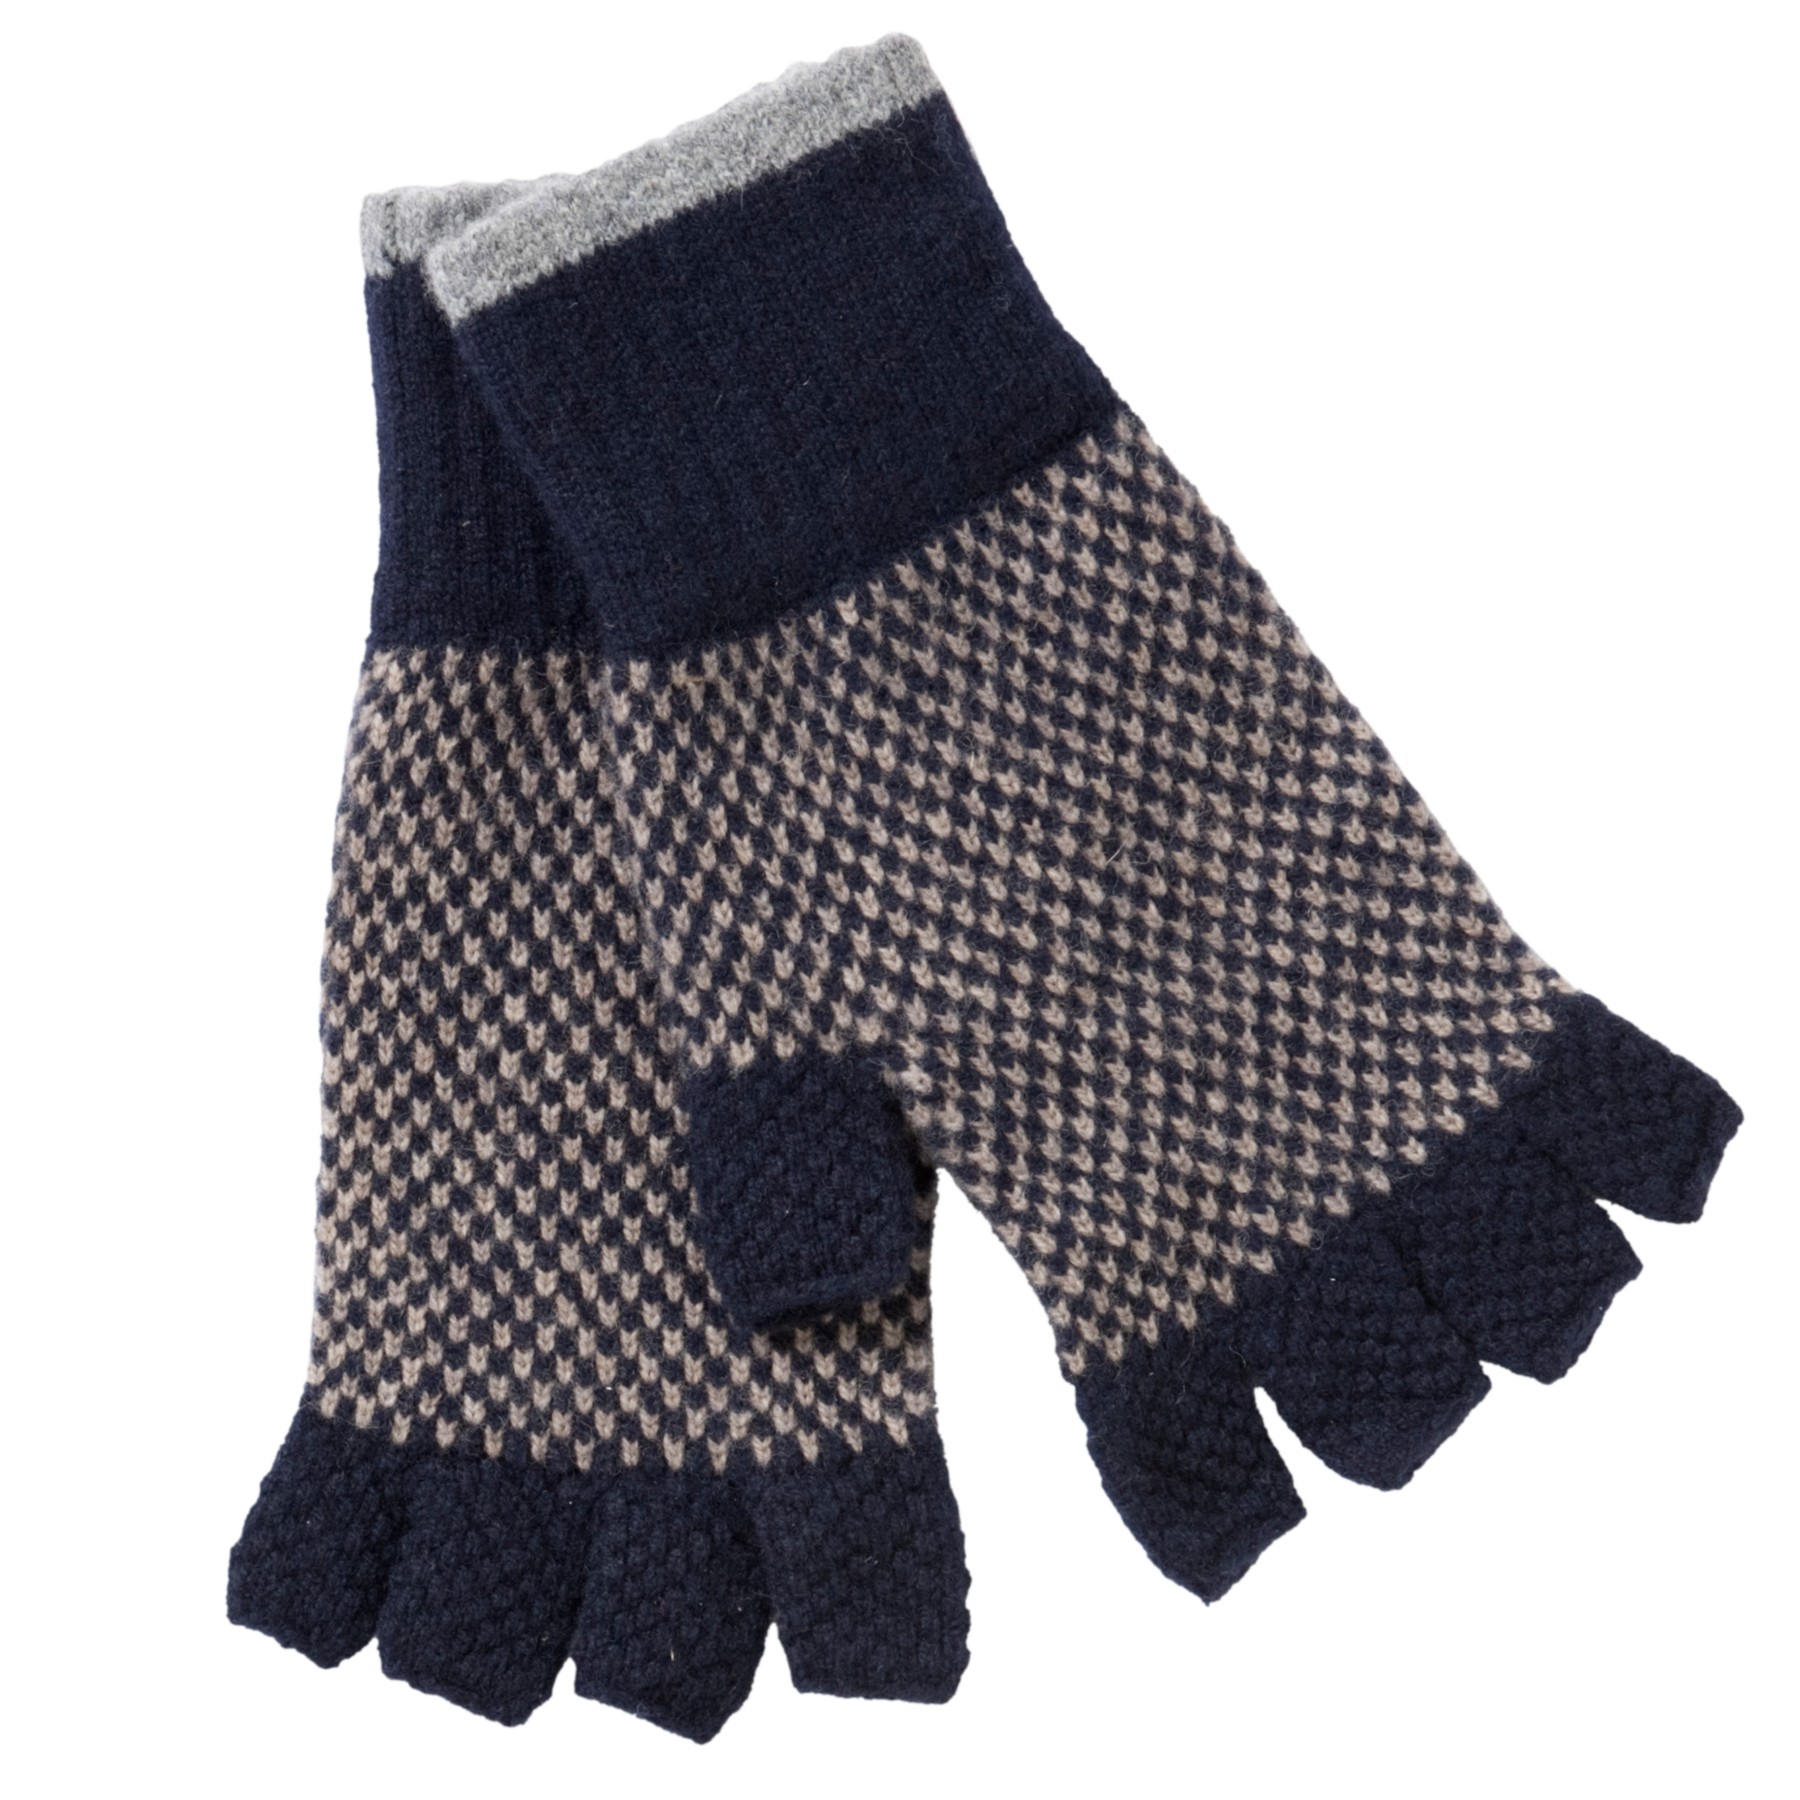 John lewis leather driving gloves - Gallery